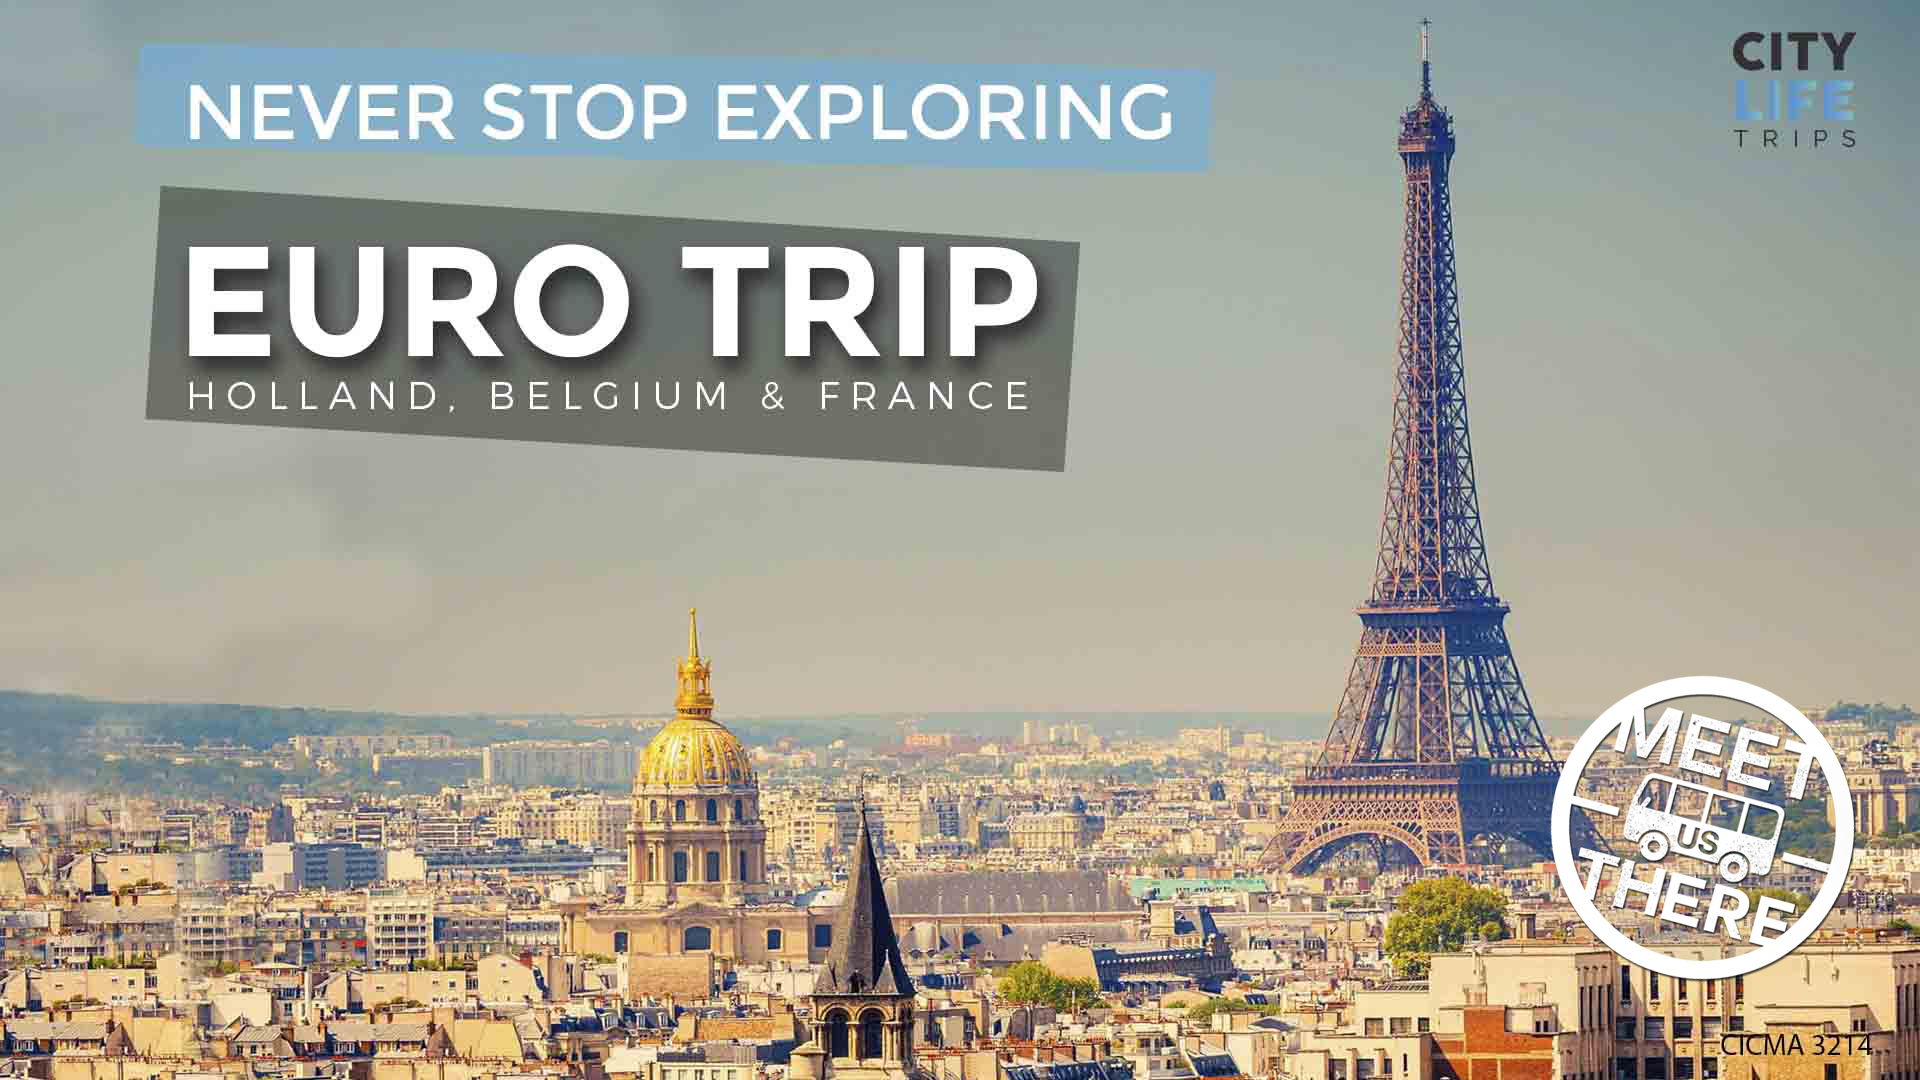 EURO TRIP – Holland, Belgium & France (Meet us there)